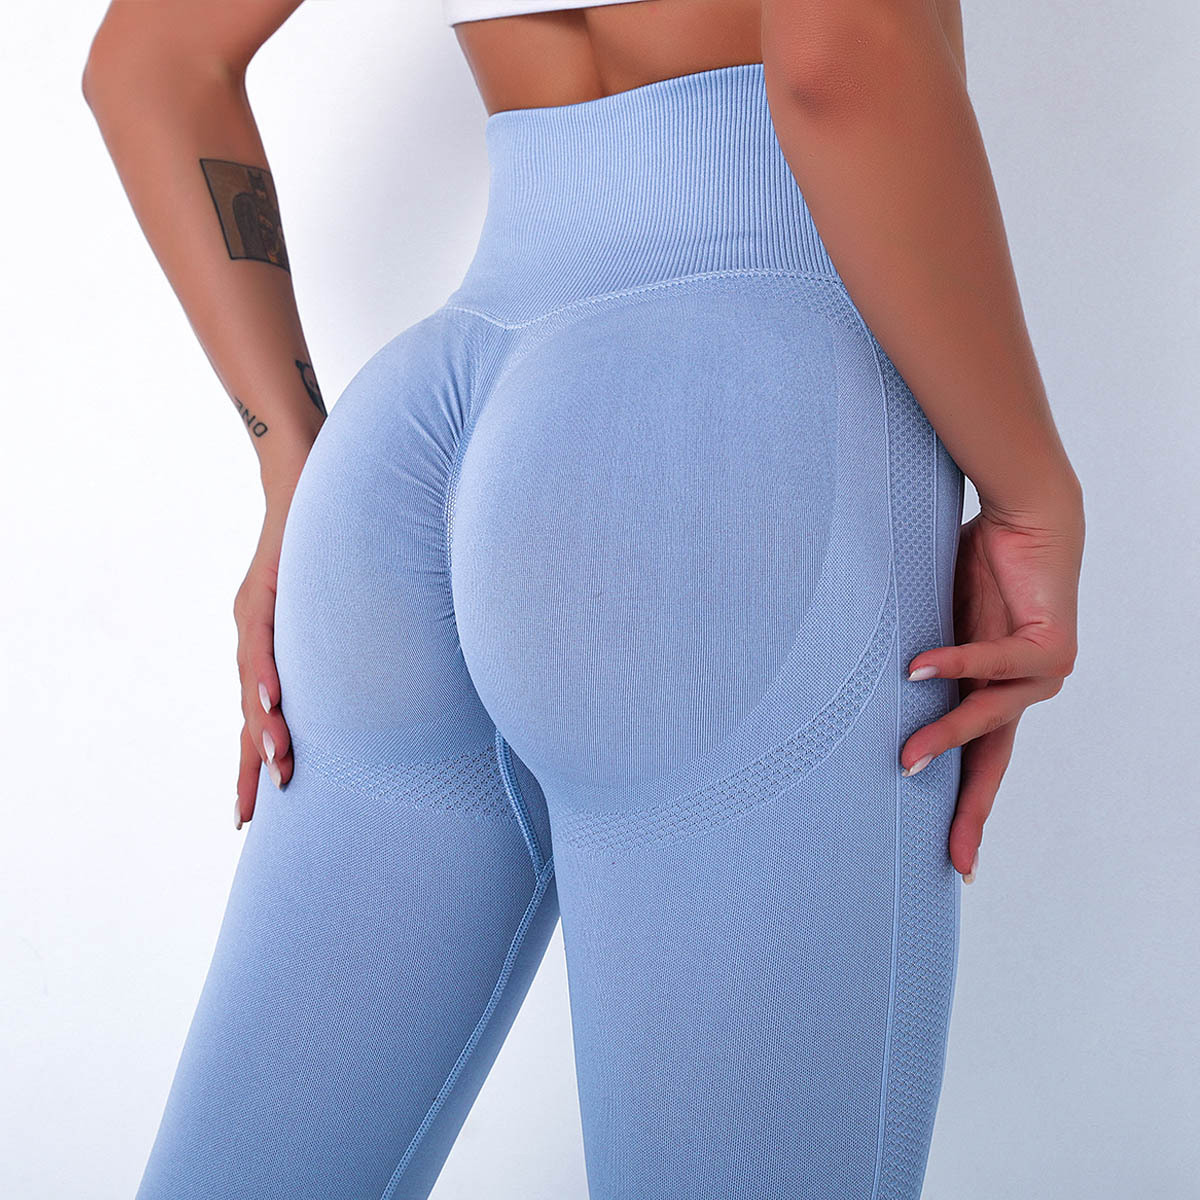 High Waist Seamless Yoga Pants Bubble Butt Push Up Sport Leggings Gym Fitness Compression Tights Workout Running Trousers